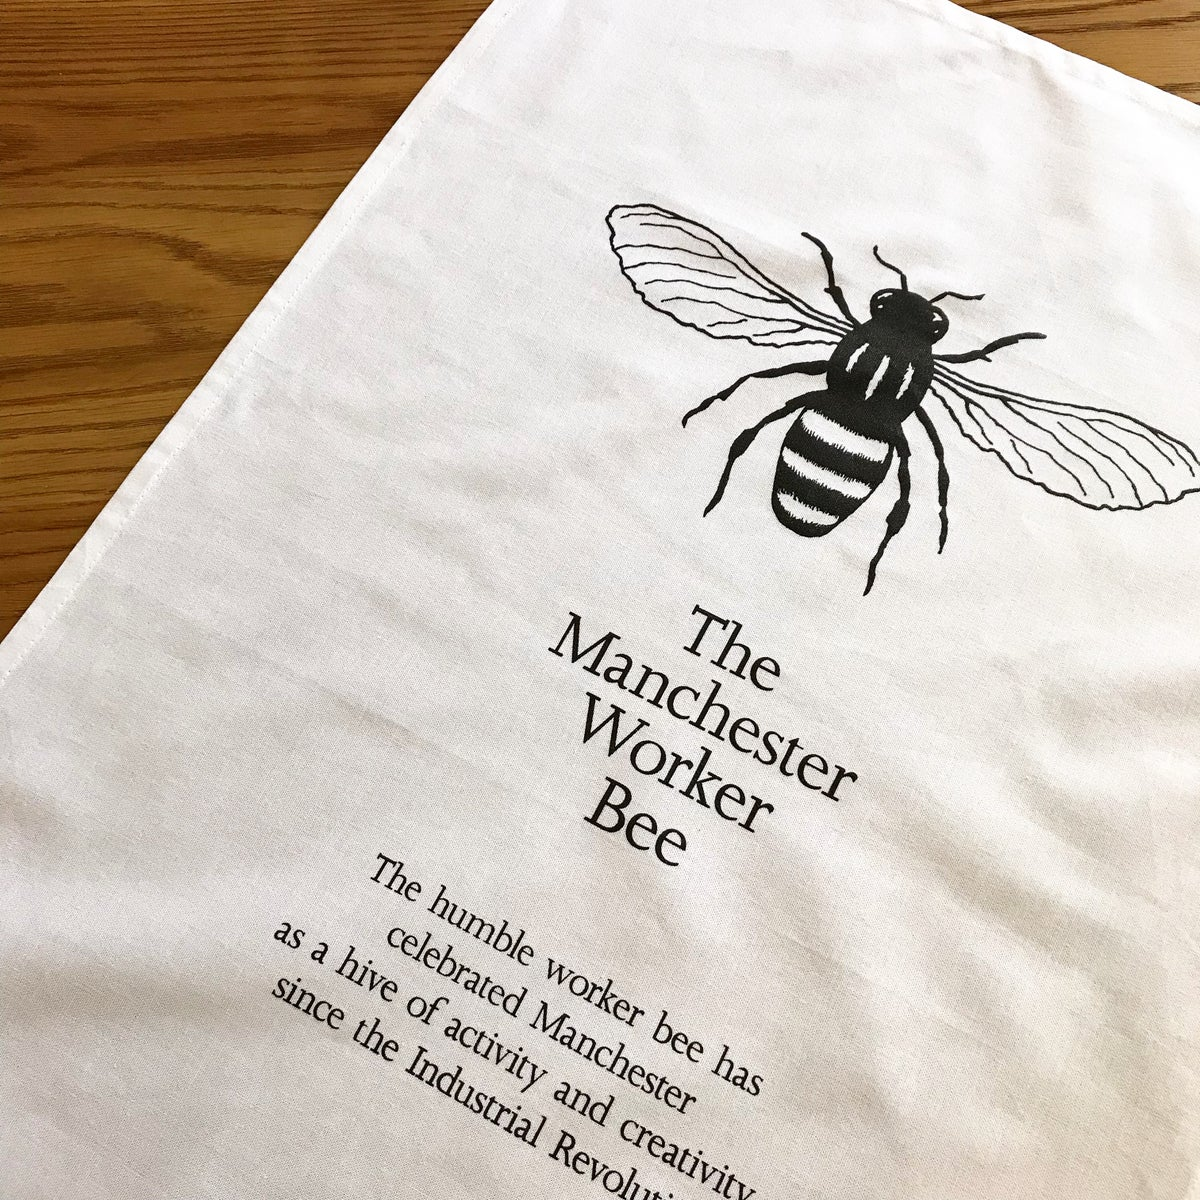 Image of MANCHESTER WORKER BEE TEA TOWEL